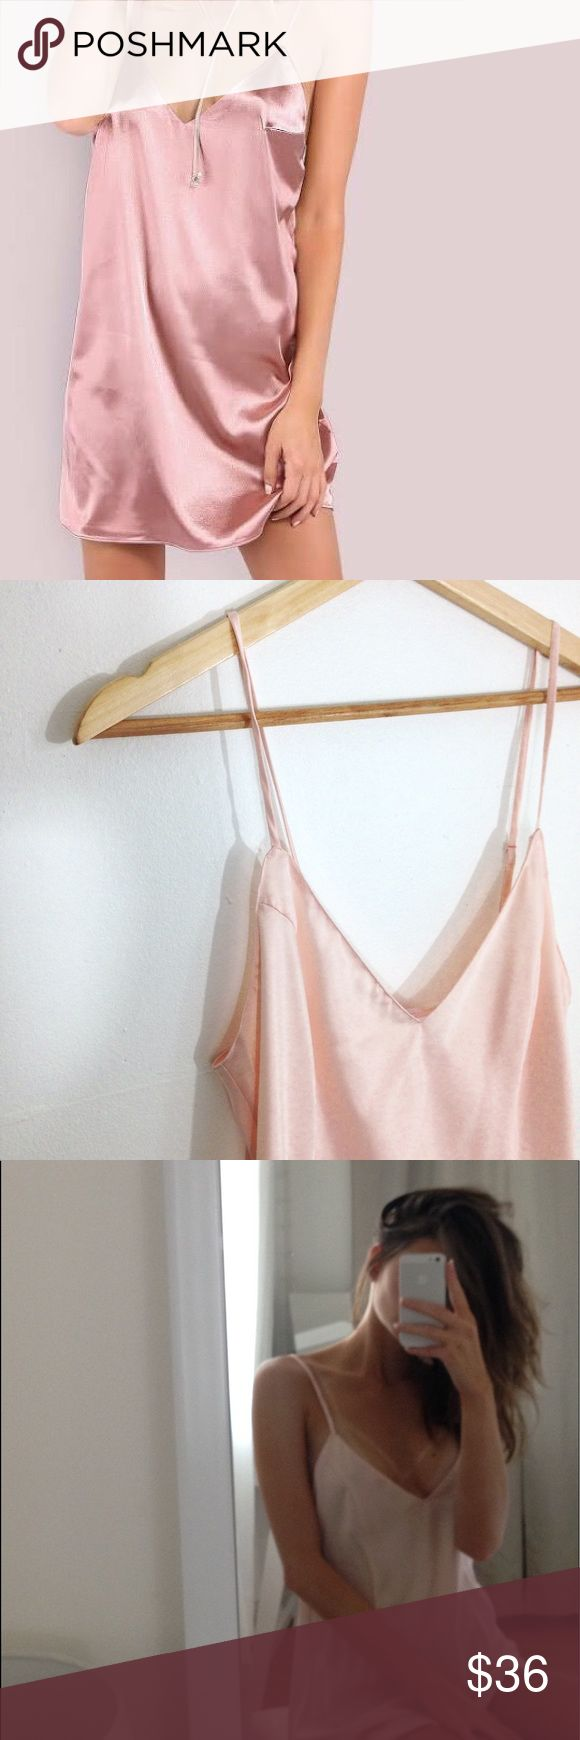 Pink Silk Cami Dress Baby pink silk Cami dress from Victoria secret, size M. Slim fitted, NEW without tags, never been worn. Adjustable straps. Perfect for spring and summer✨ Victoria's Secret Dresses Mini